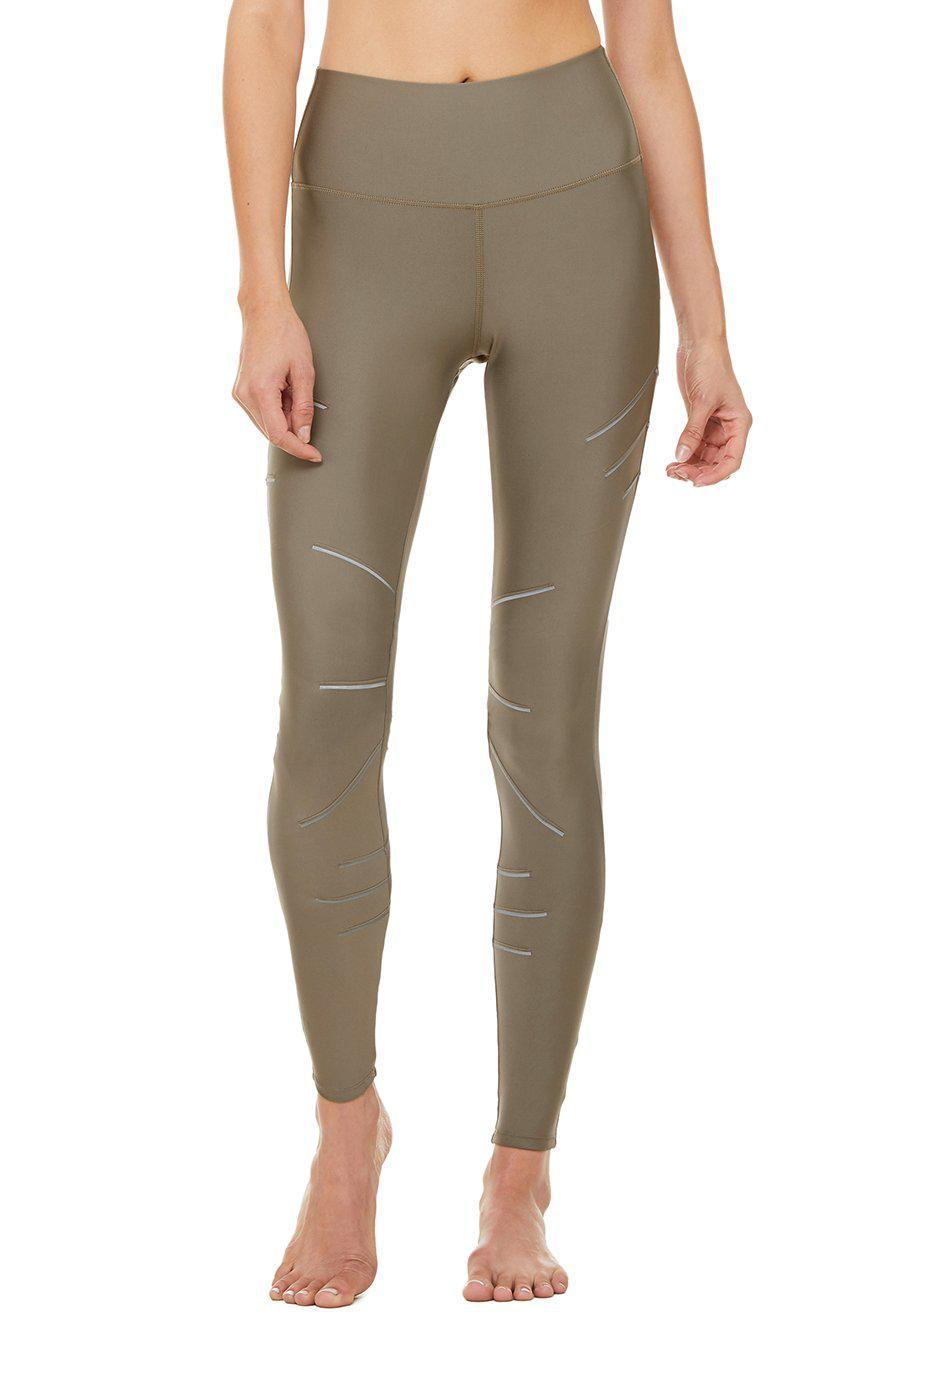 High-Waist Sequence Legging - Olive Branch